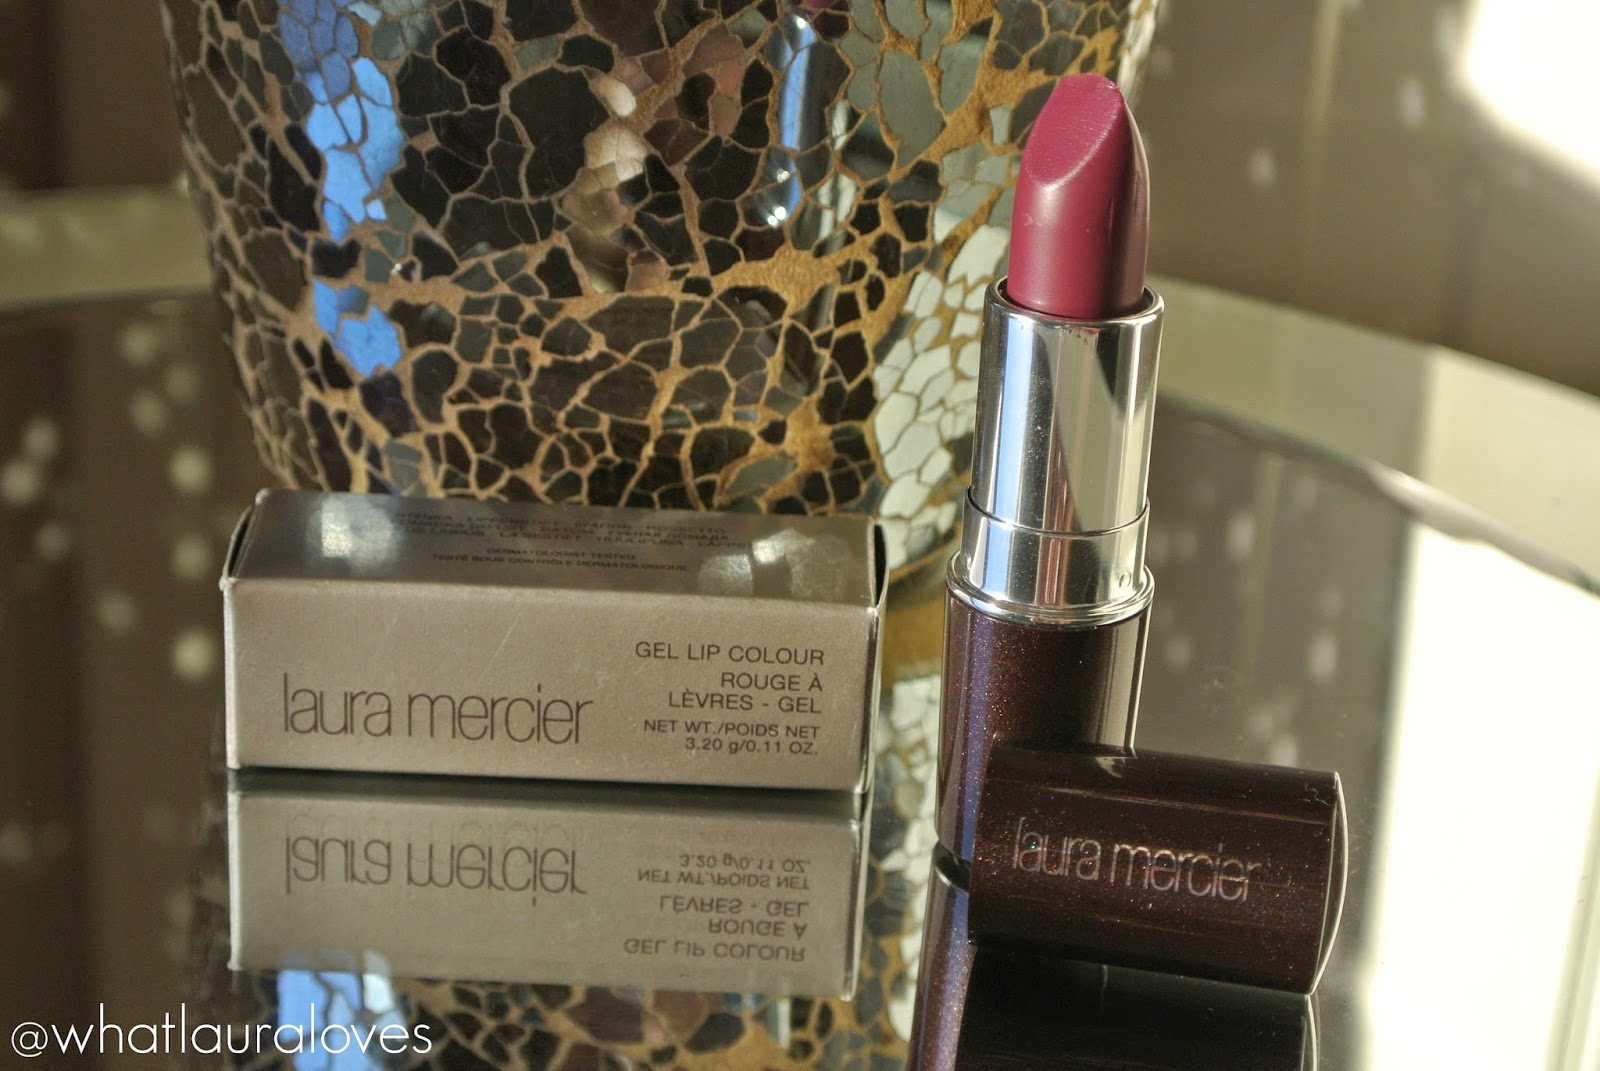 Laura Mercier Gel Lip Colour in Temptation Lipstick